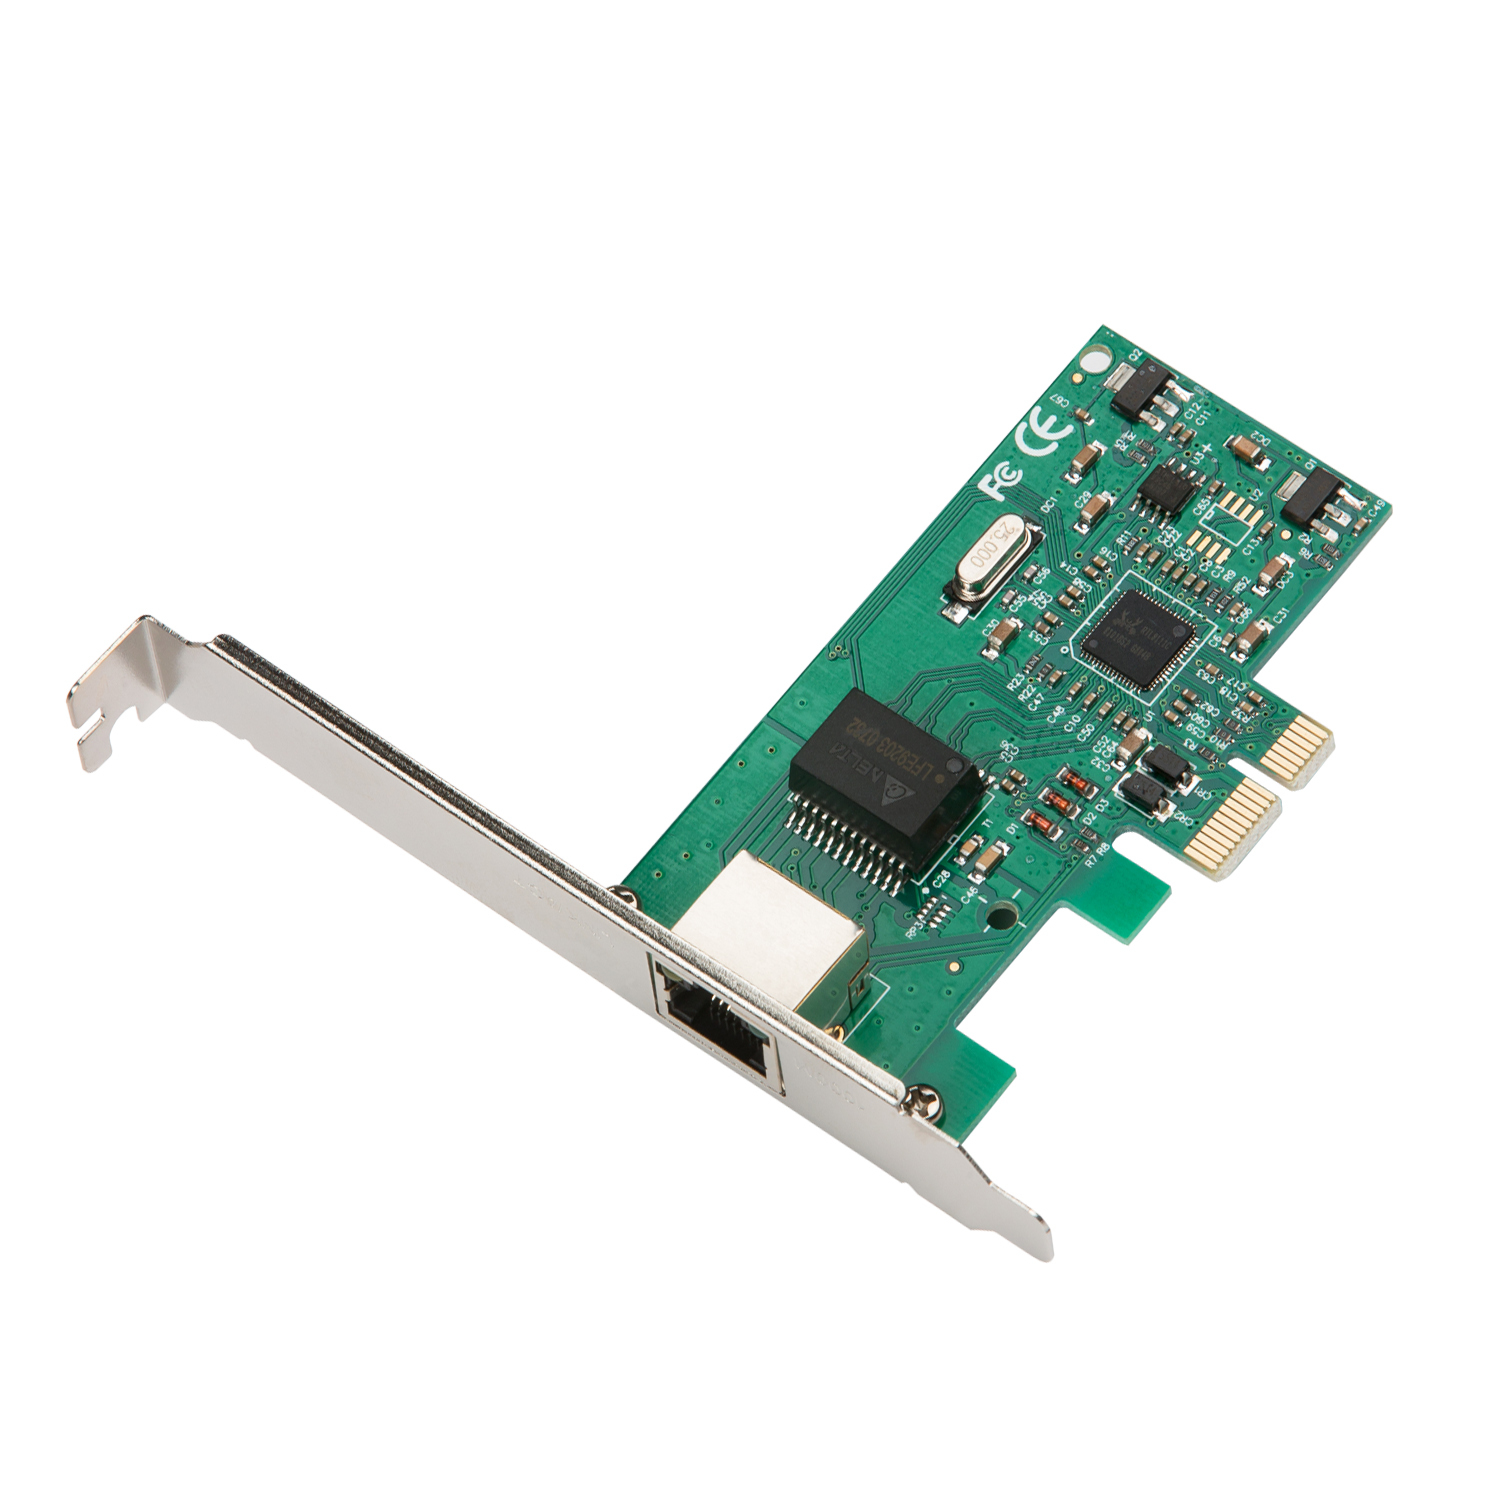 PCIE GIGABIT ETHERNET CARD